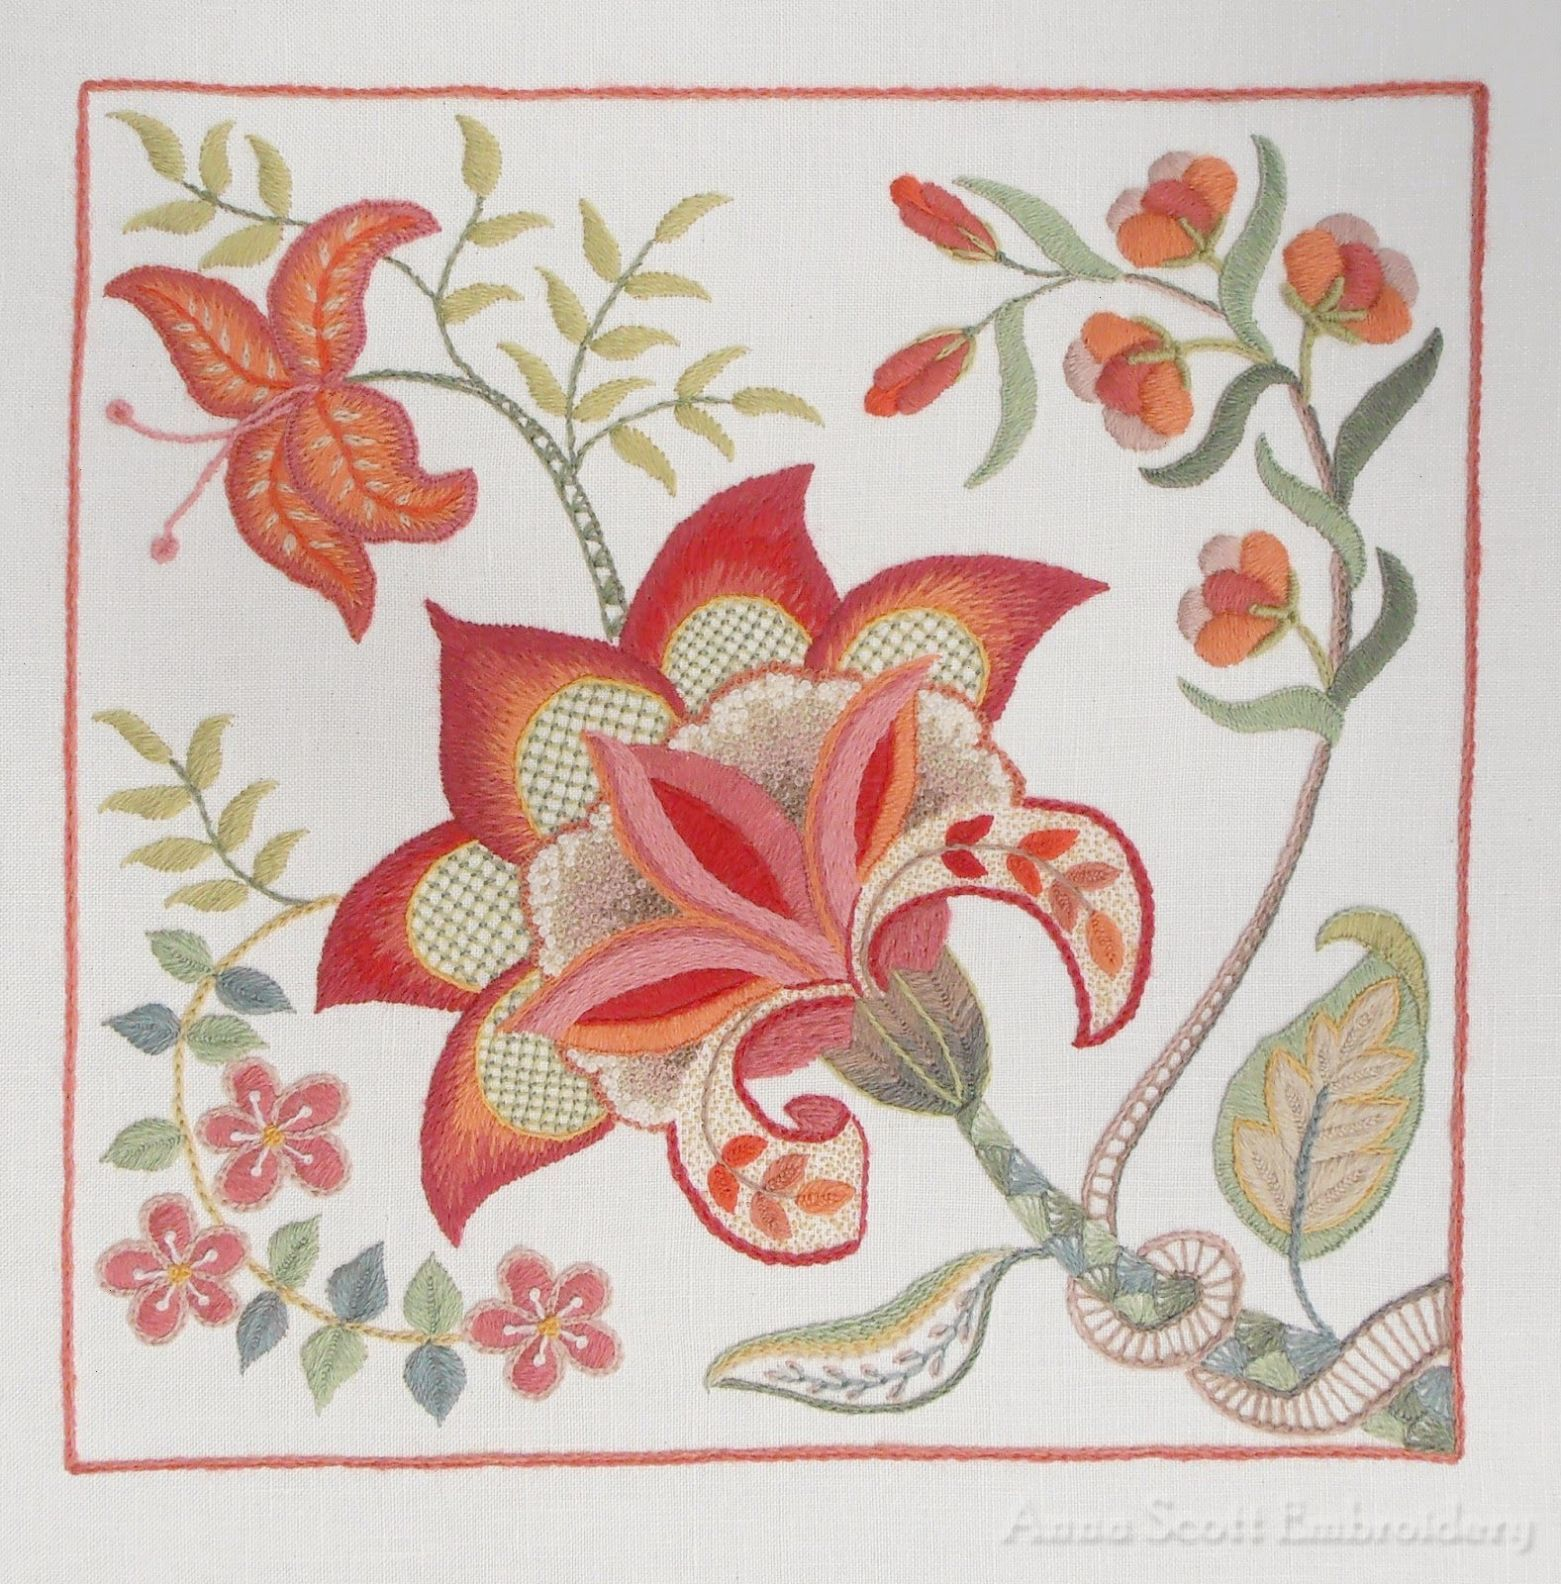 Gorgeous crewel embroidery by anna scott click through for close